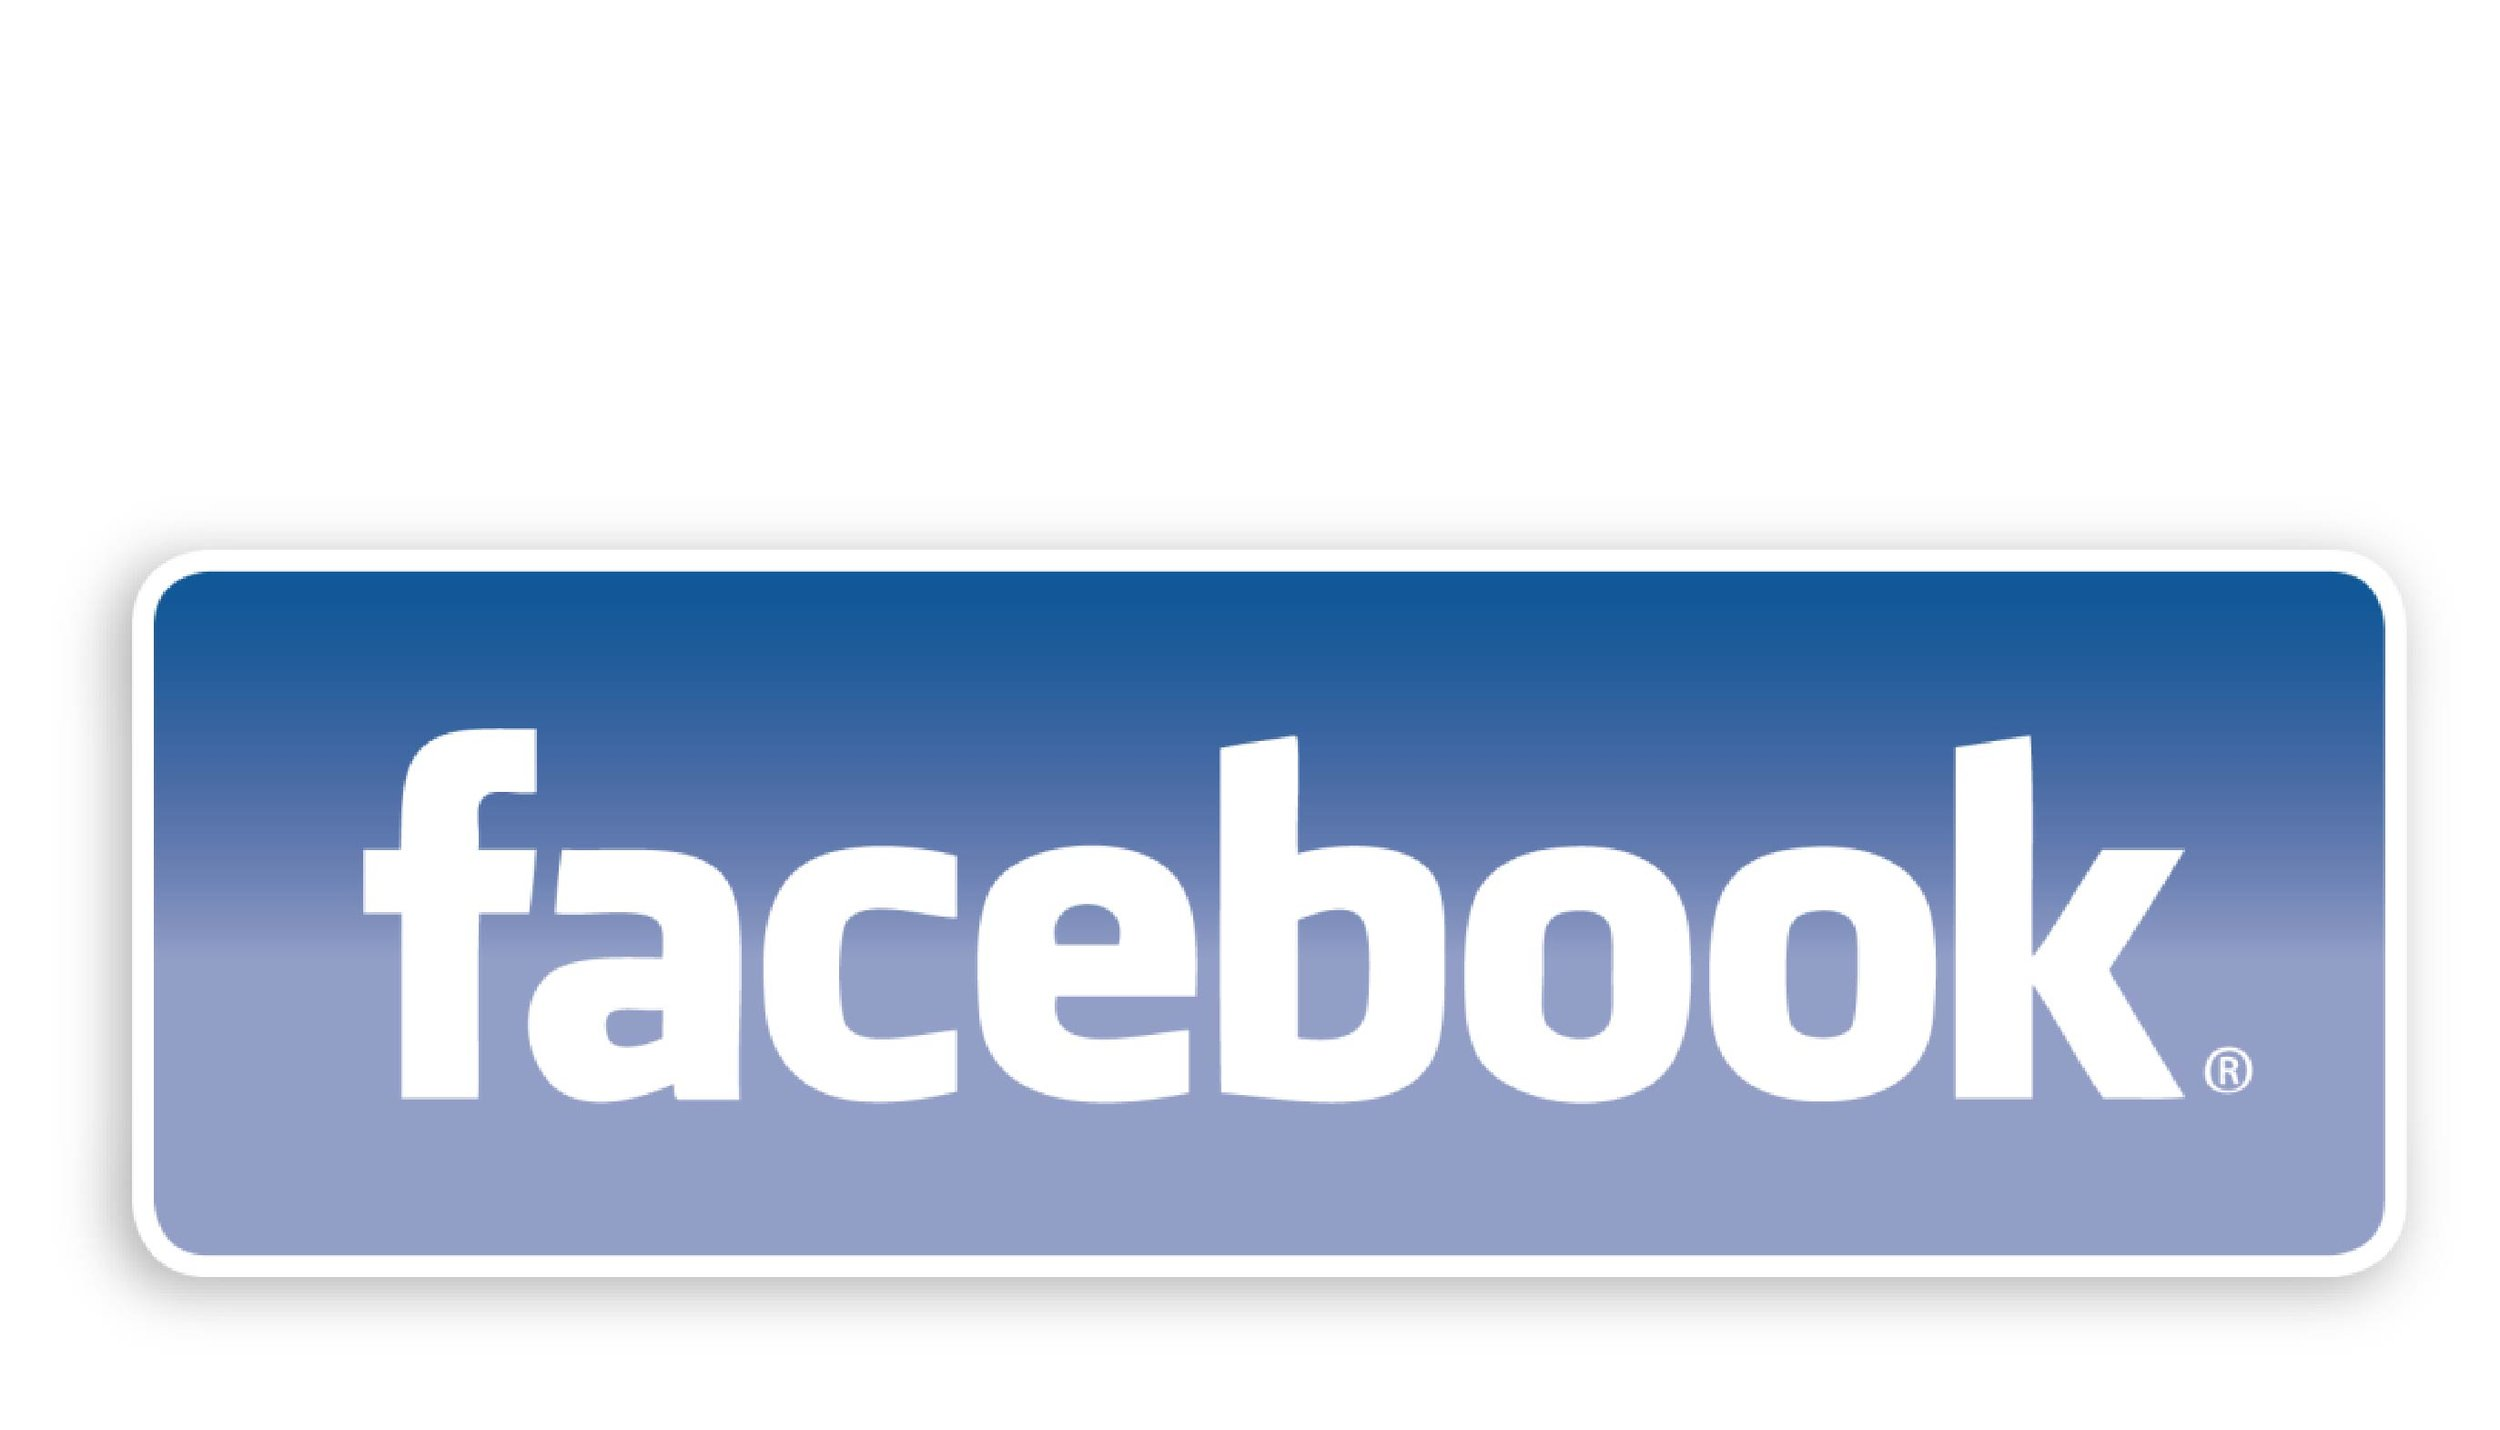 Facebook - Stay in touch with us on Facebook, as we post news, daily encouragement, upcoming events, and more.